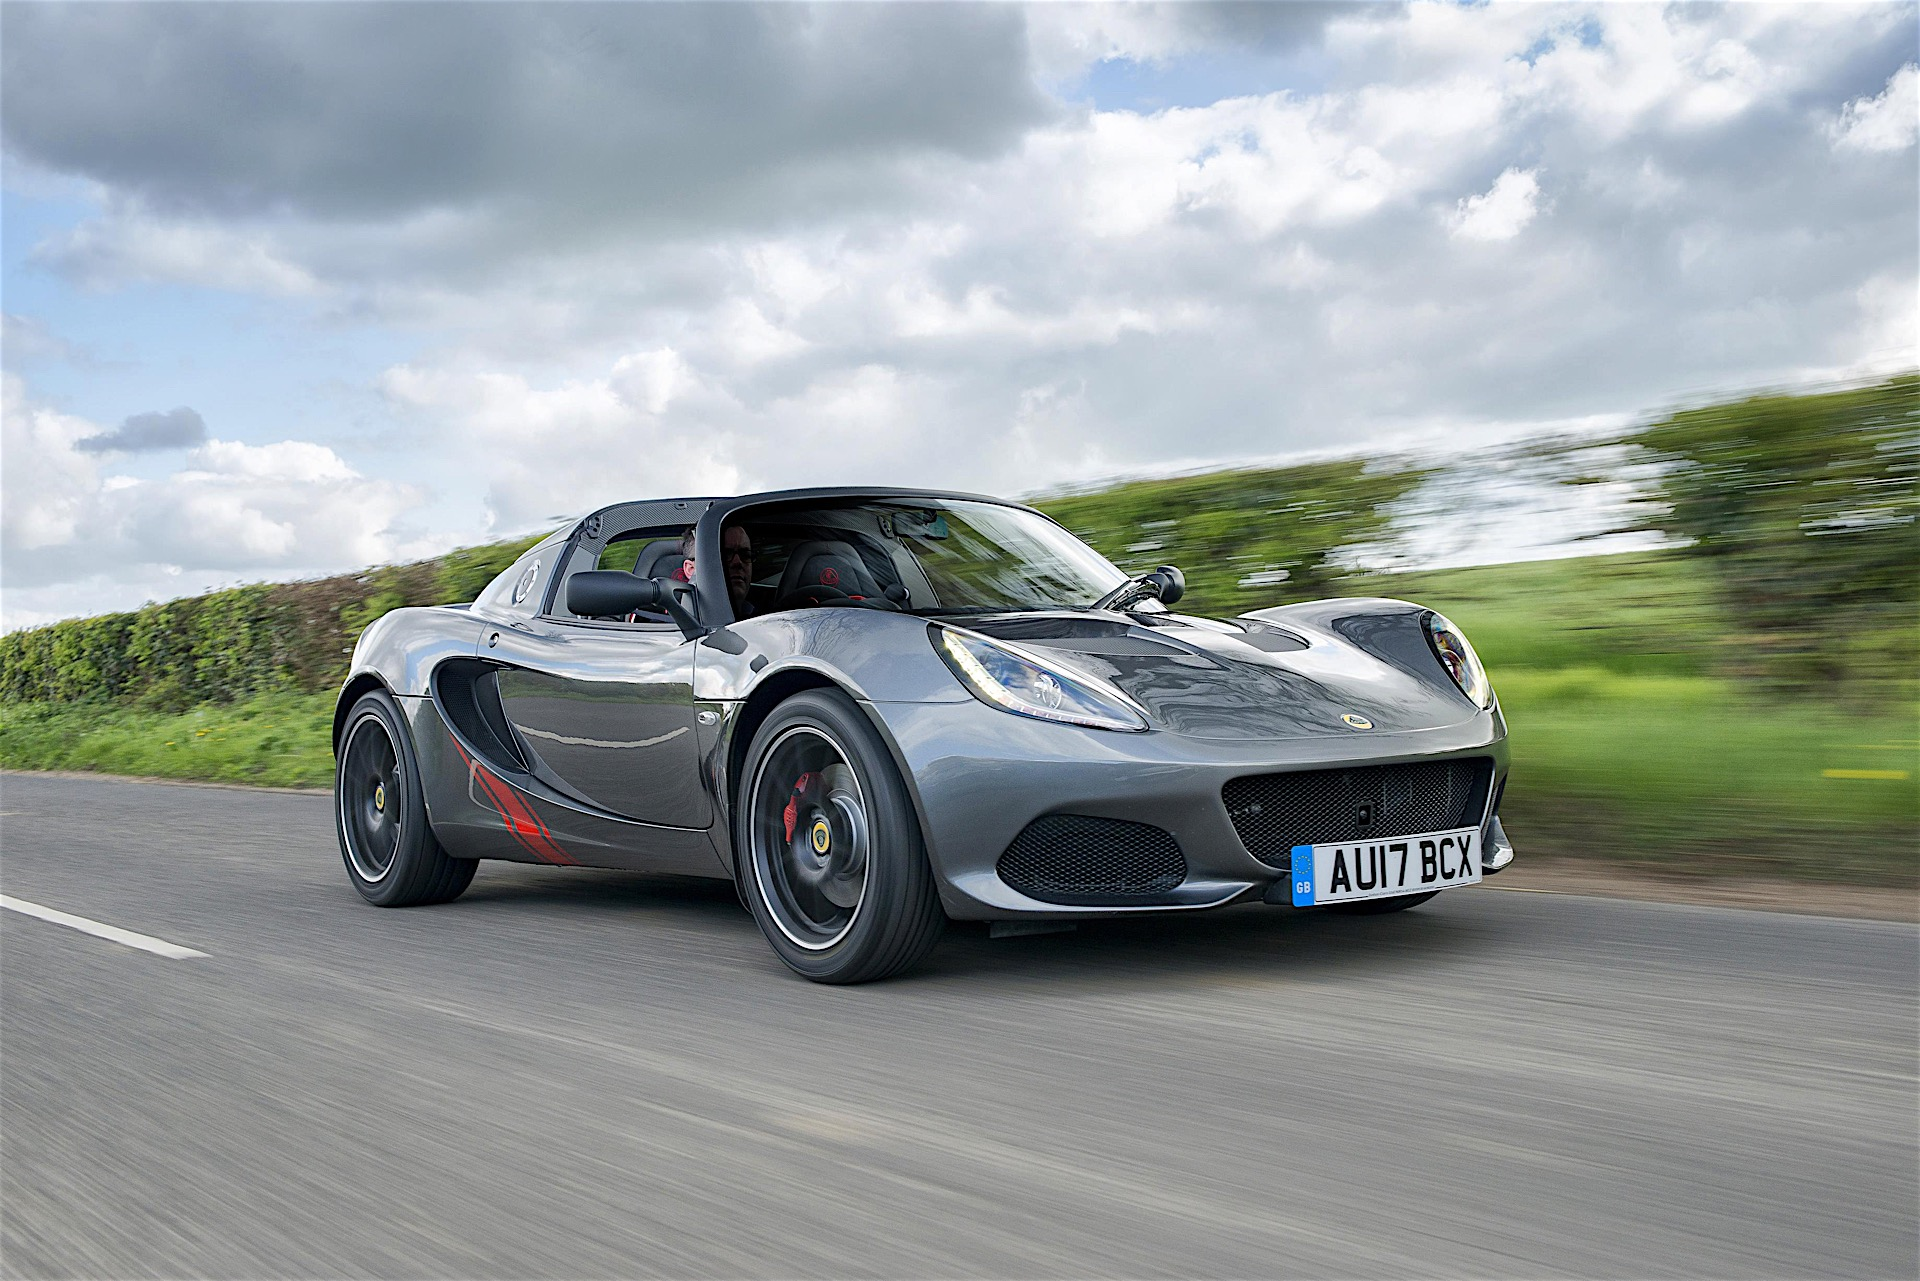 https://s1.cdn.autoevolution.com/images/news/lotus-elise-named-slowest-depreciating-sports-cars-117888_1.jpg